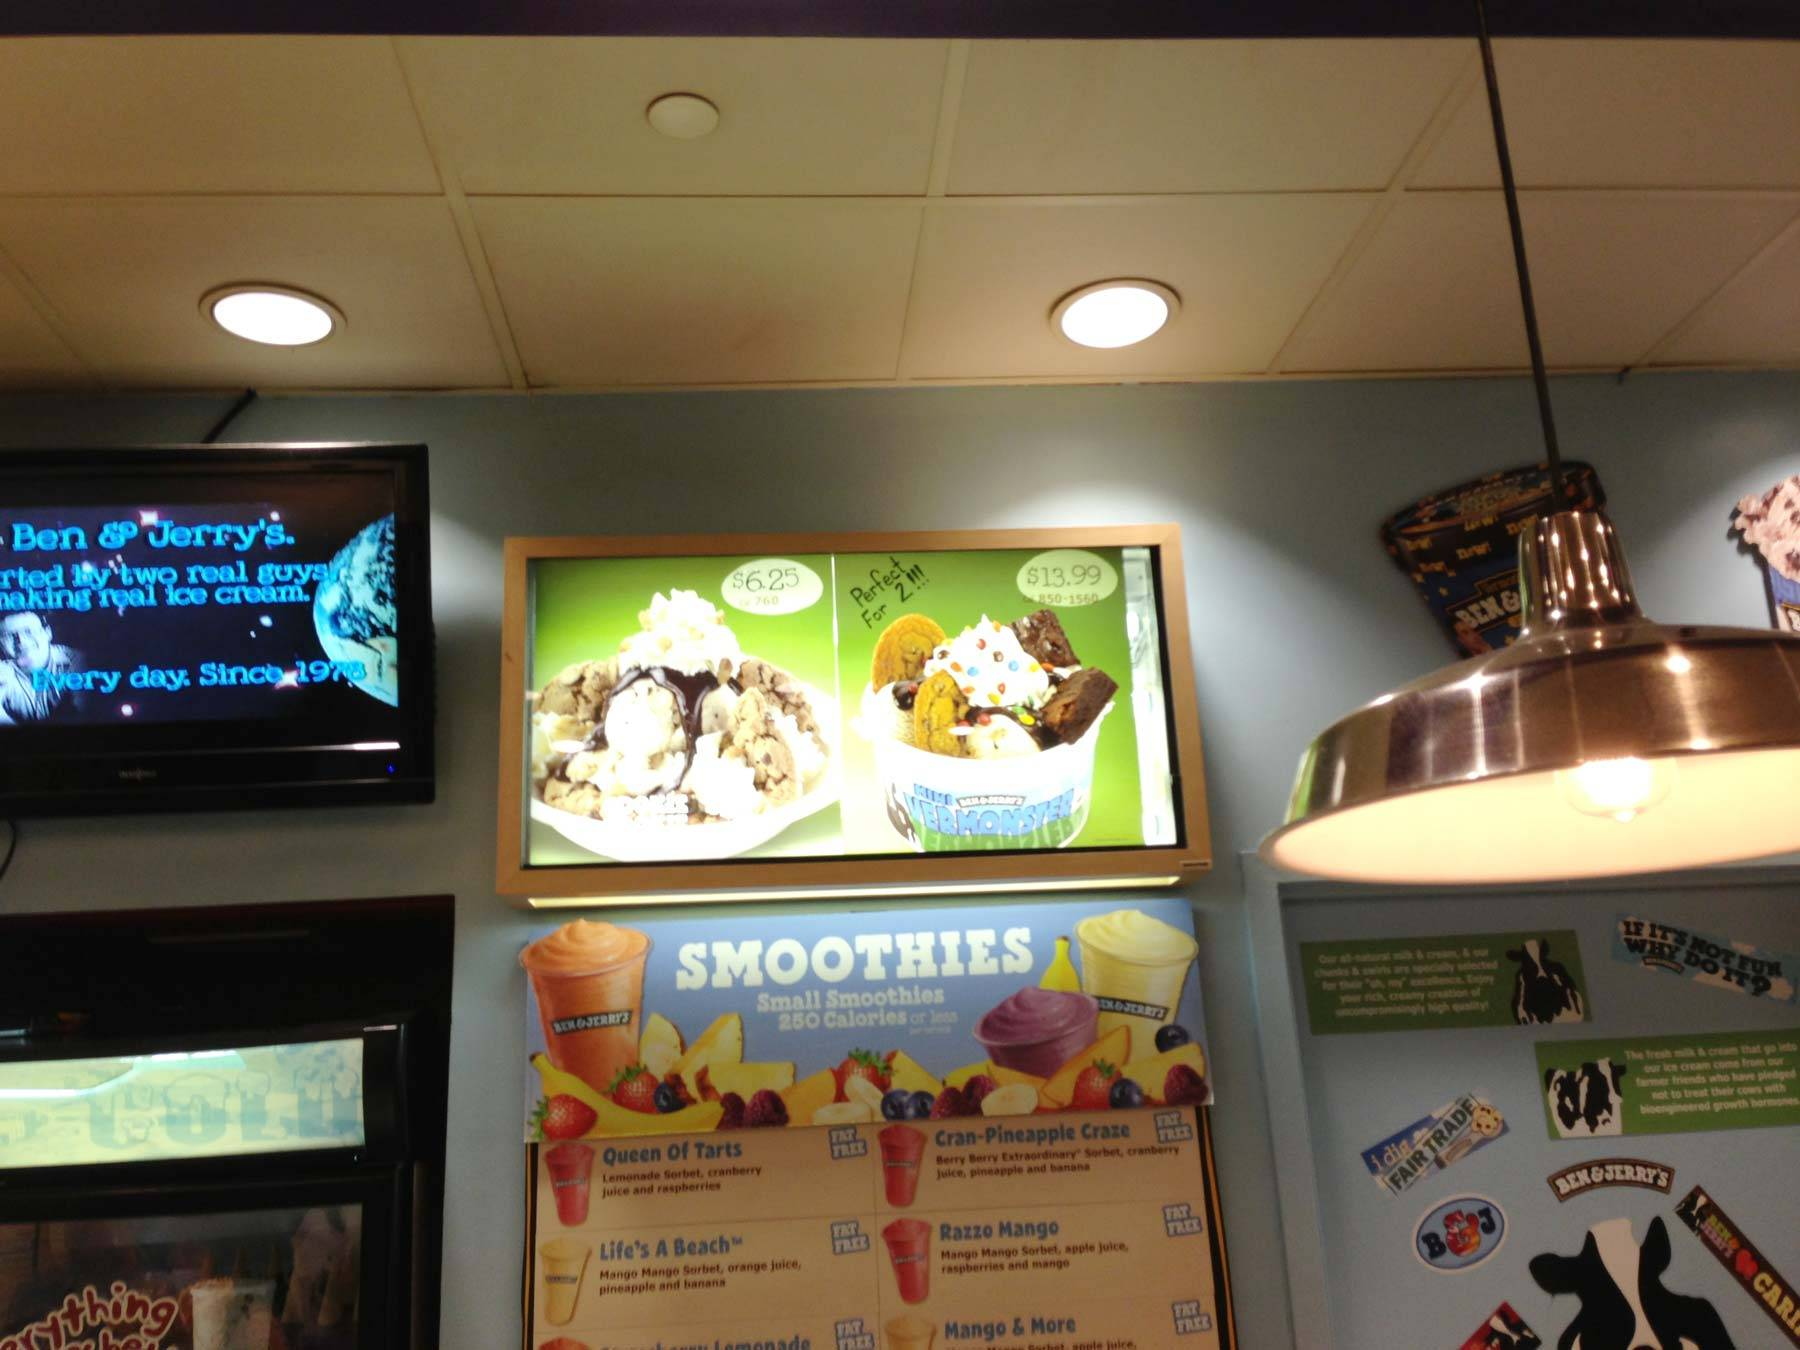 Ben and Jerry's signage